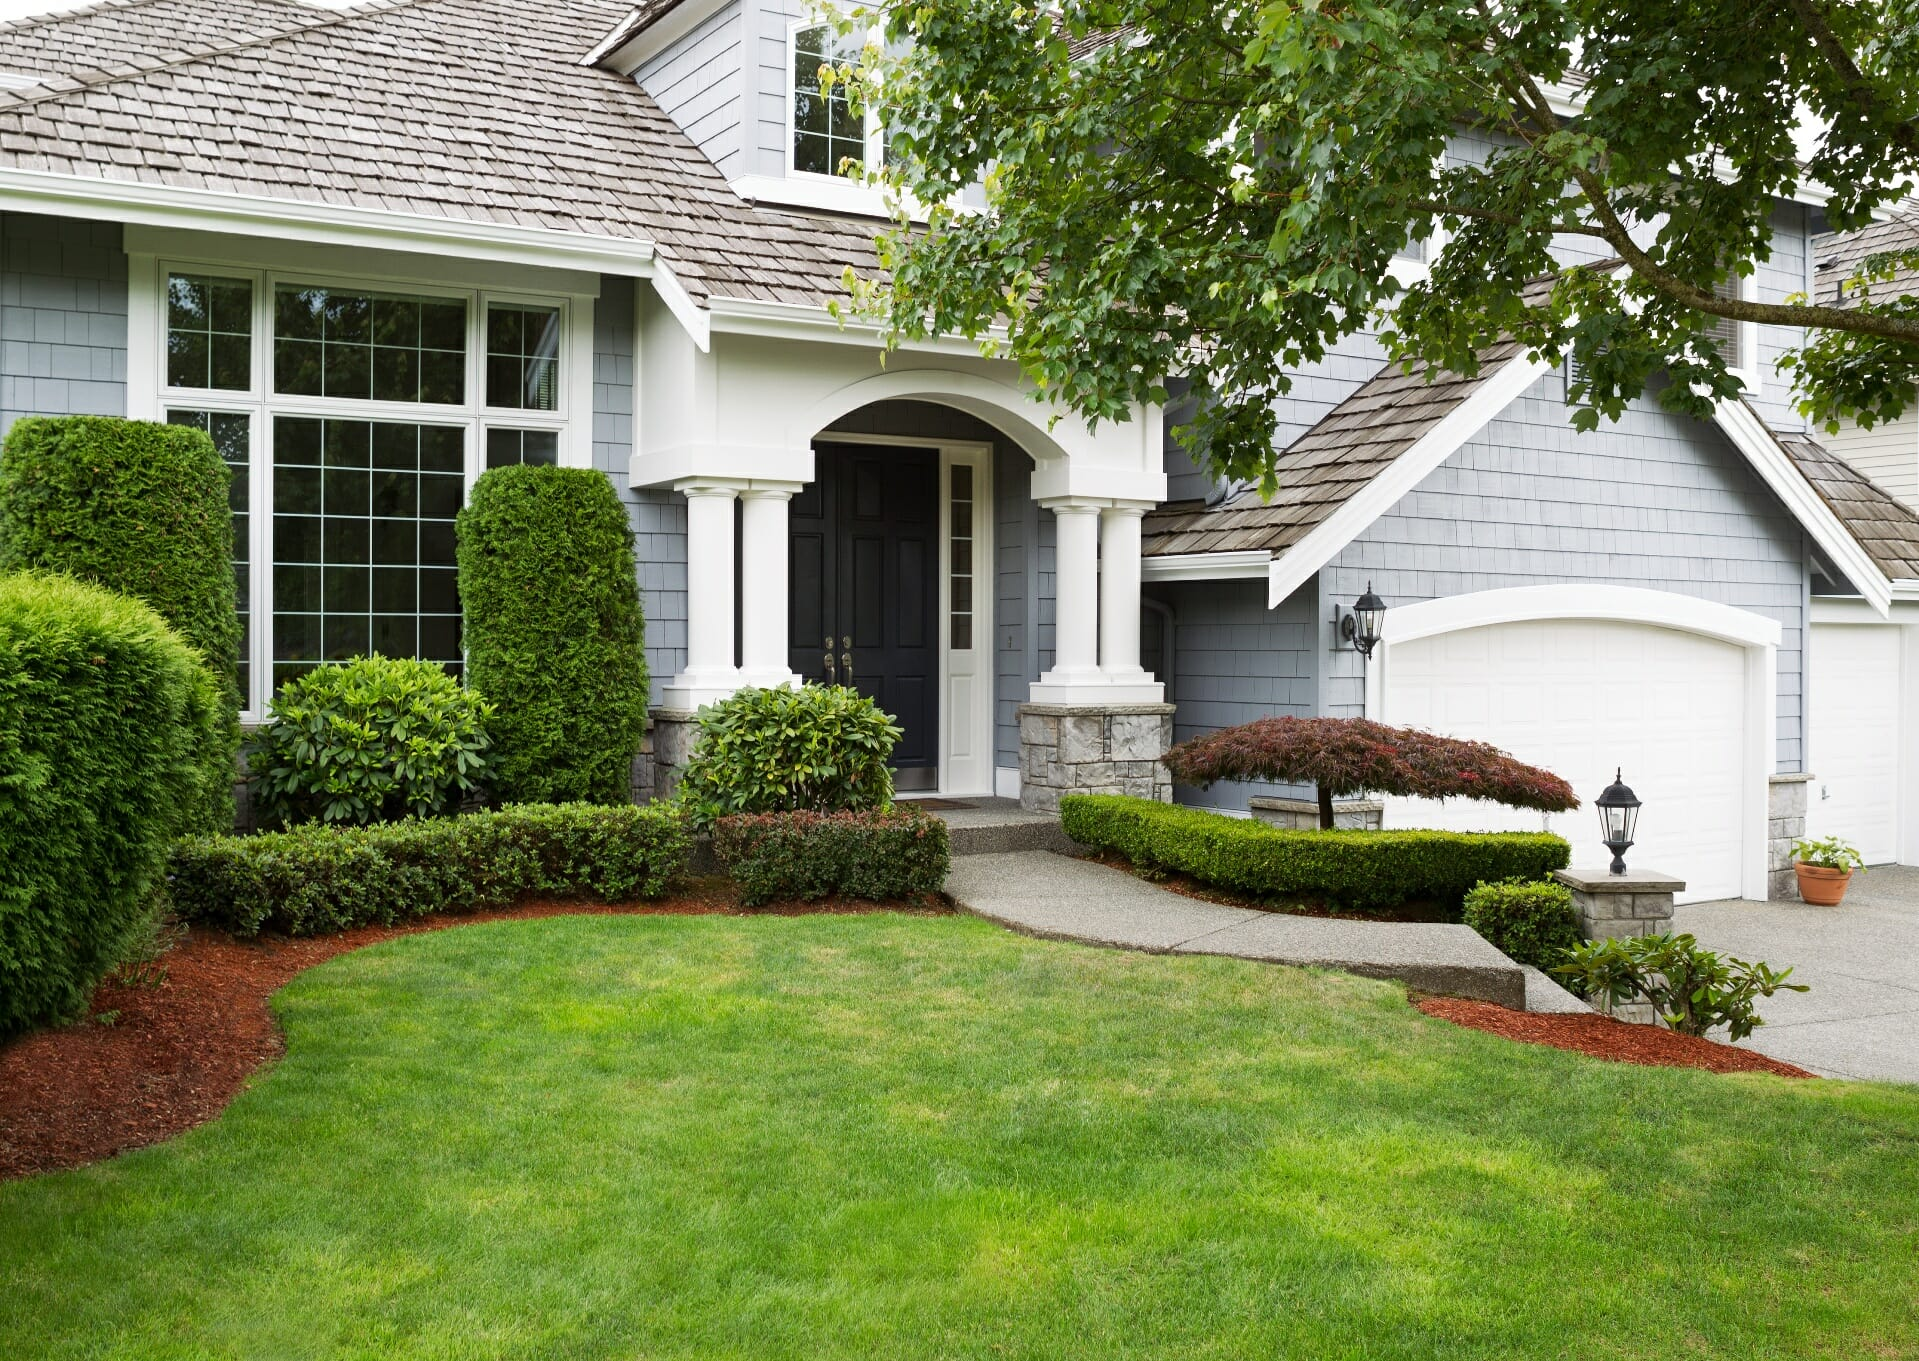 A blue shingled Cape Cod-style home with white columns and a neatly manicured front lawn.